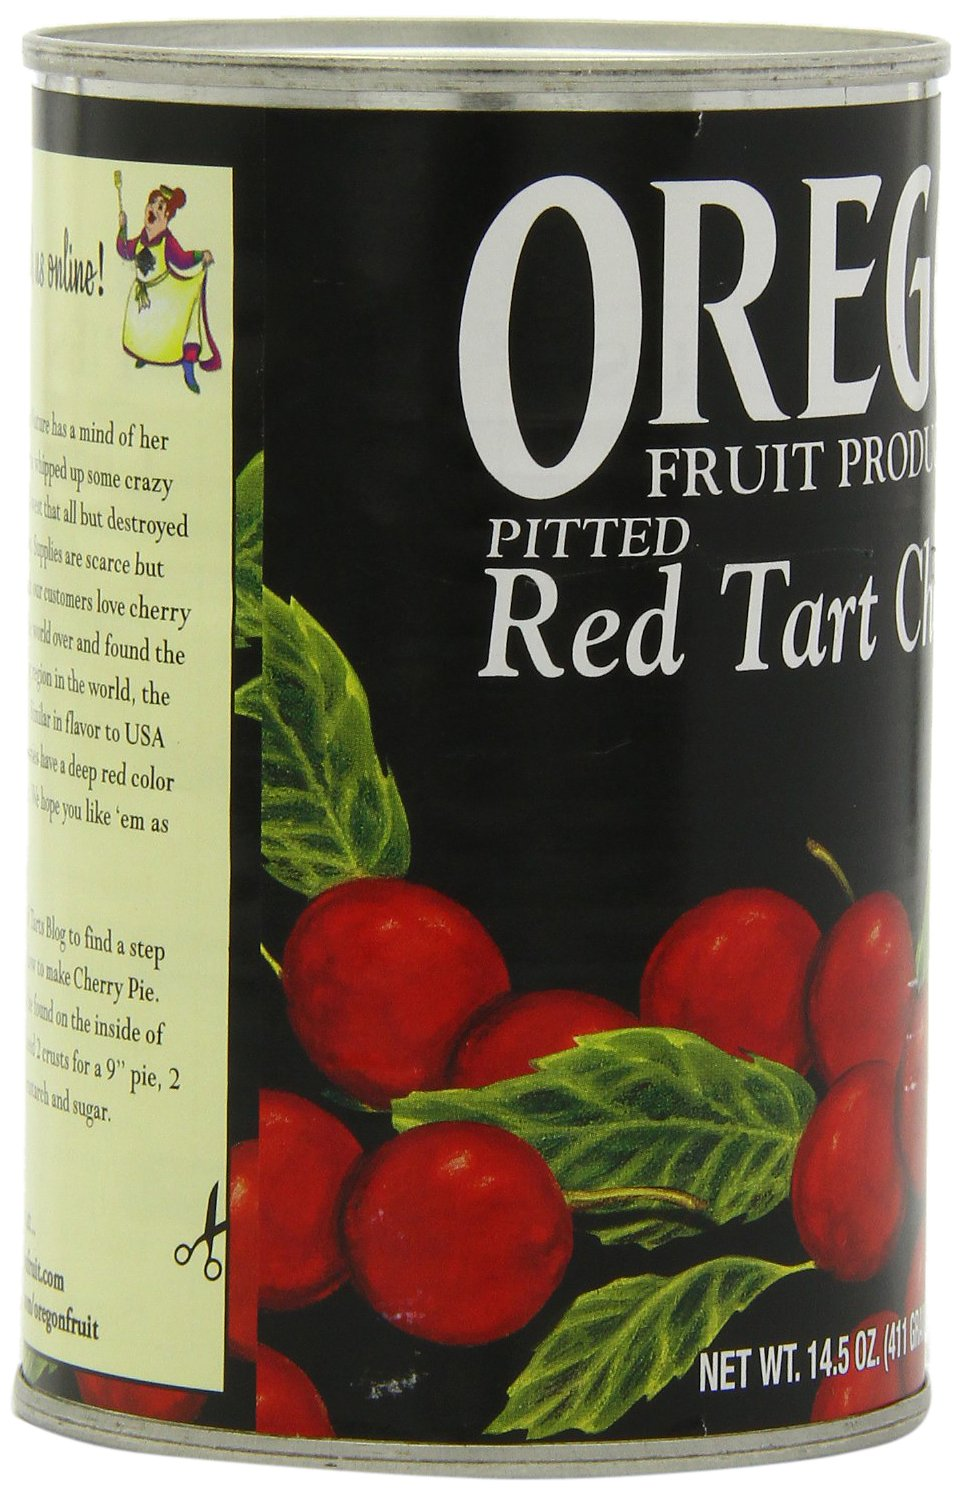 Amazon.com : Oregon Fruit Pitted Red Tart Cherries in Water, 14.5-Ounce Cans (Pack of 8) : Canned And Jarred Cherries : Grocery & Gourmet Food